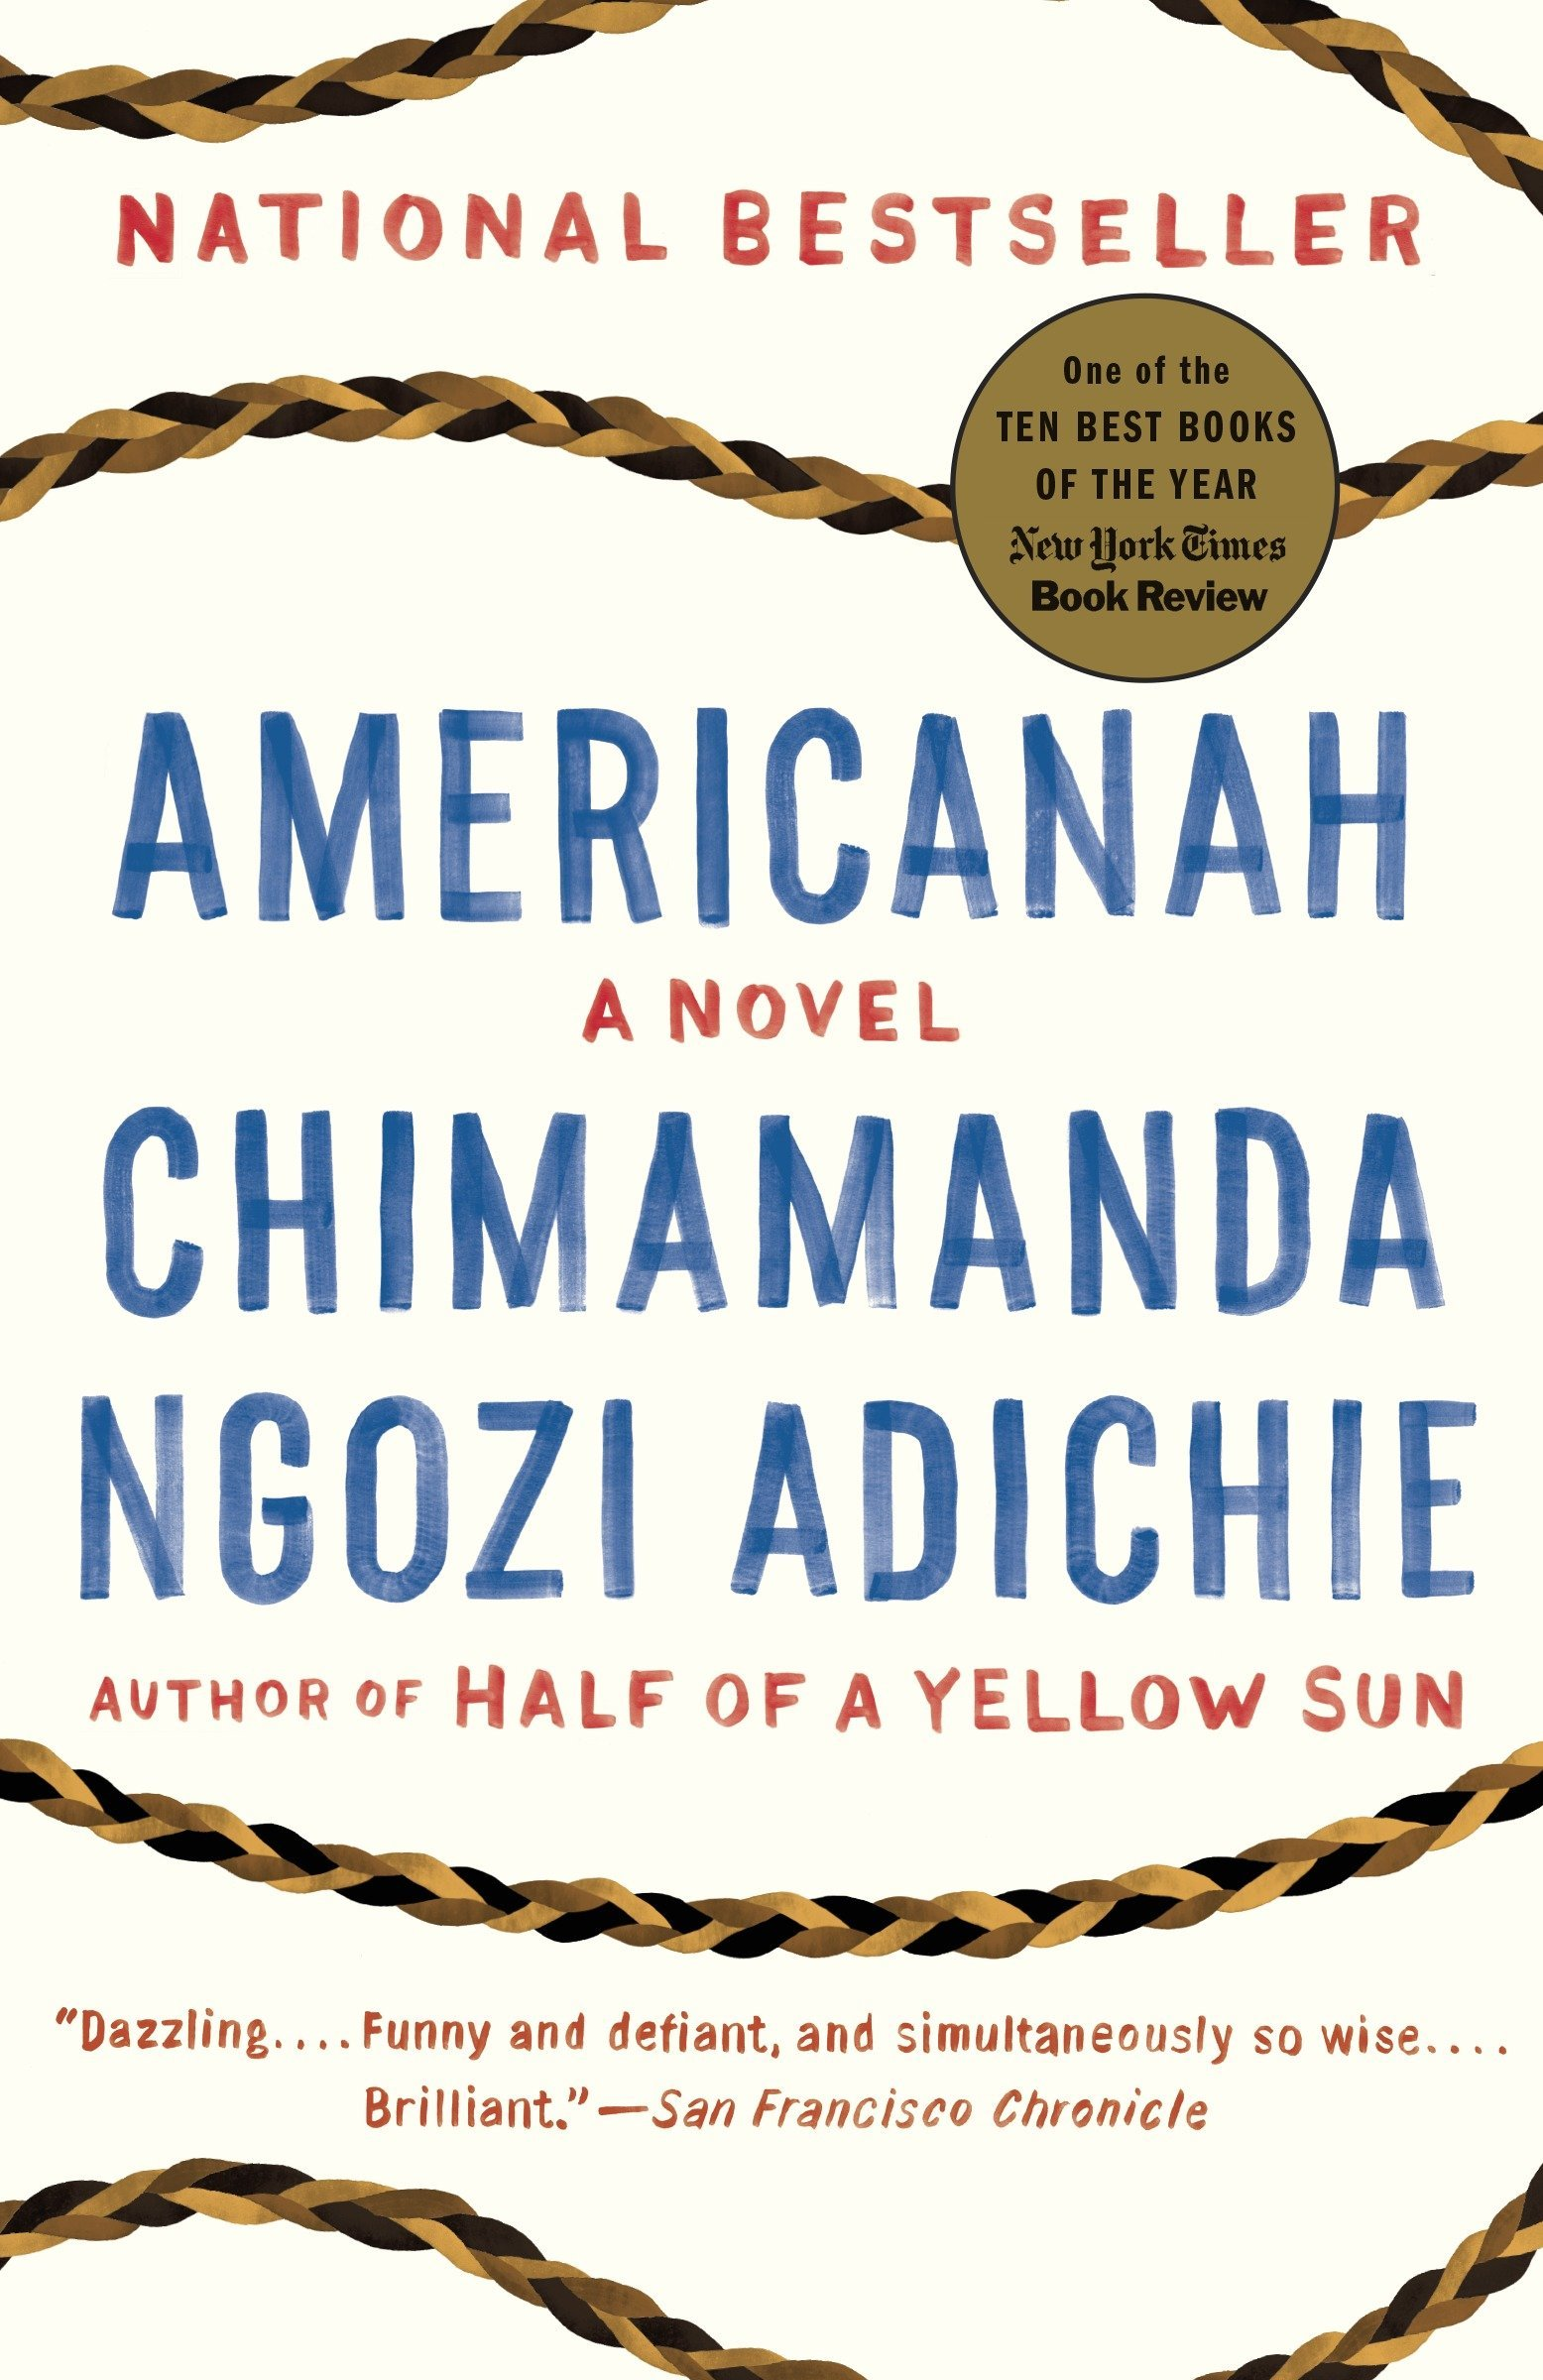 An image of Americanah by Chimamanda Ngozi Adichie